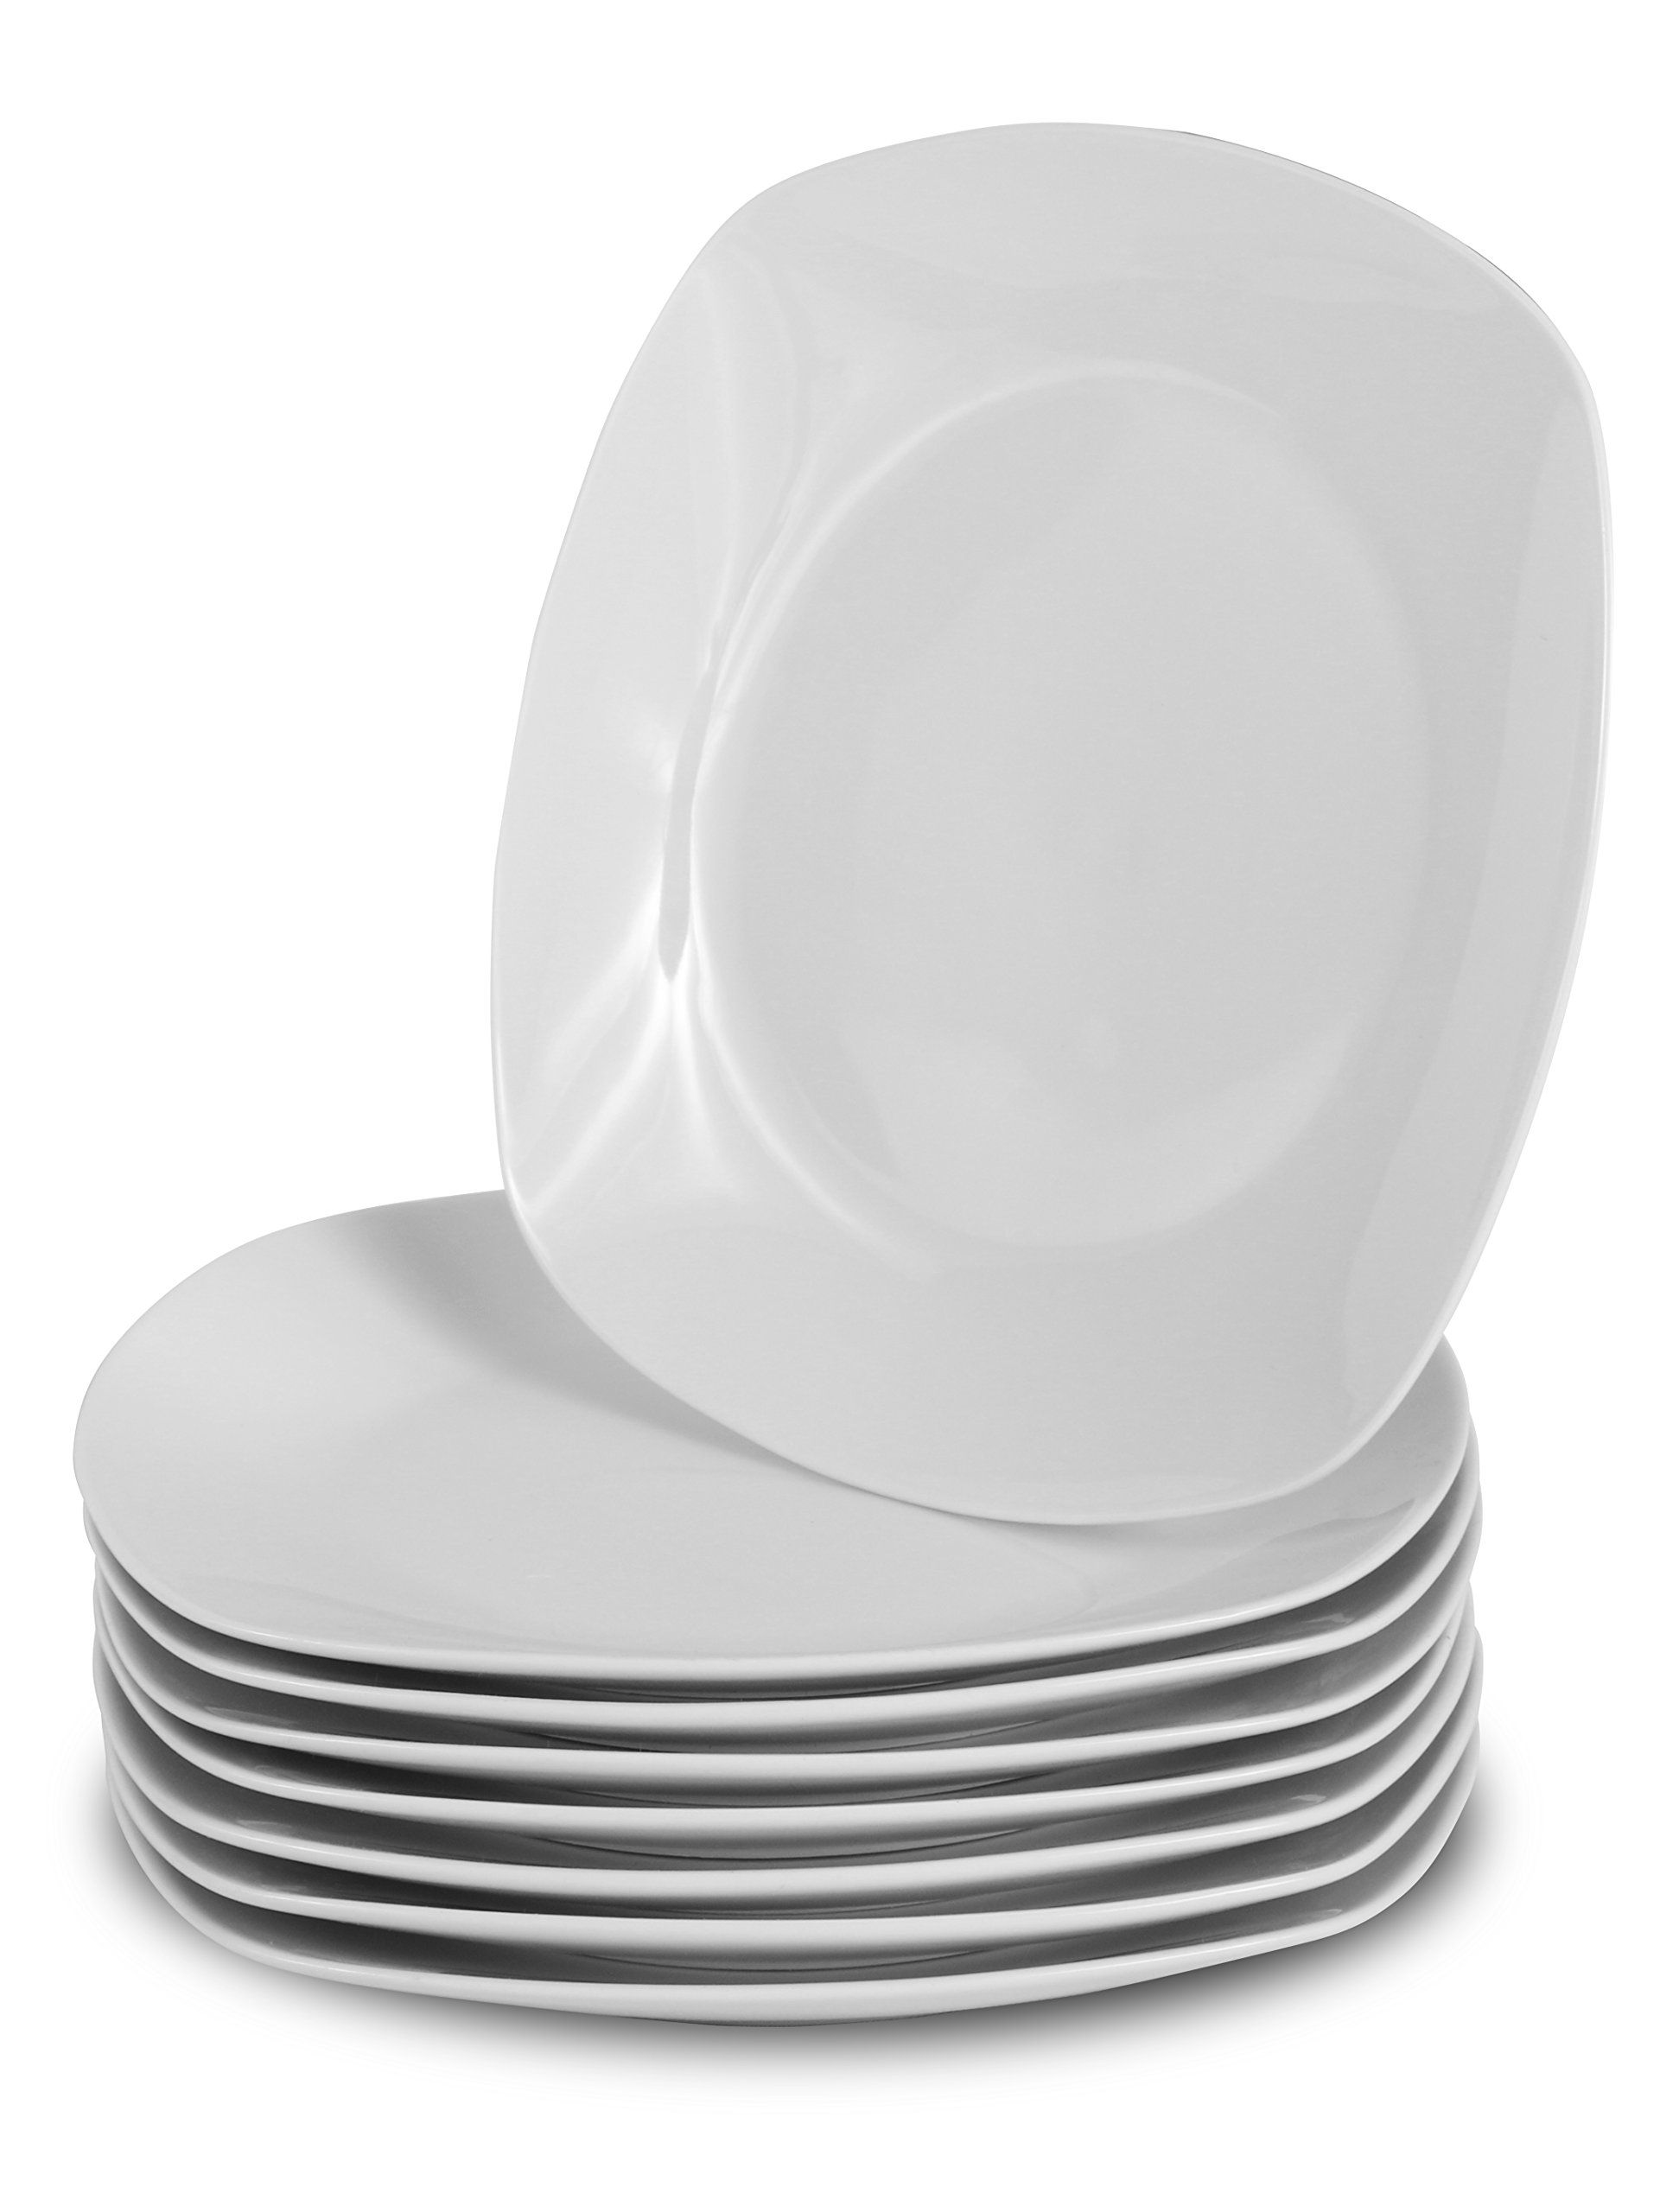 Klikel 8 White Square Dinner Plates 10inch Classic Solid Coupe Style Porcelain Dinnerware Be Sure To Check Out Thi Porcelain Dinnerware Plates Dinner Plates